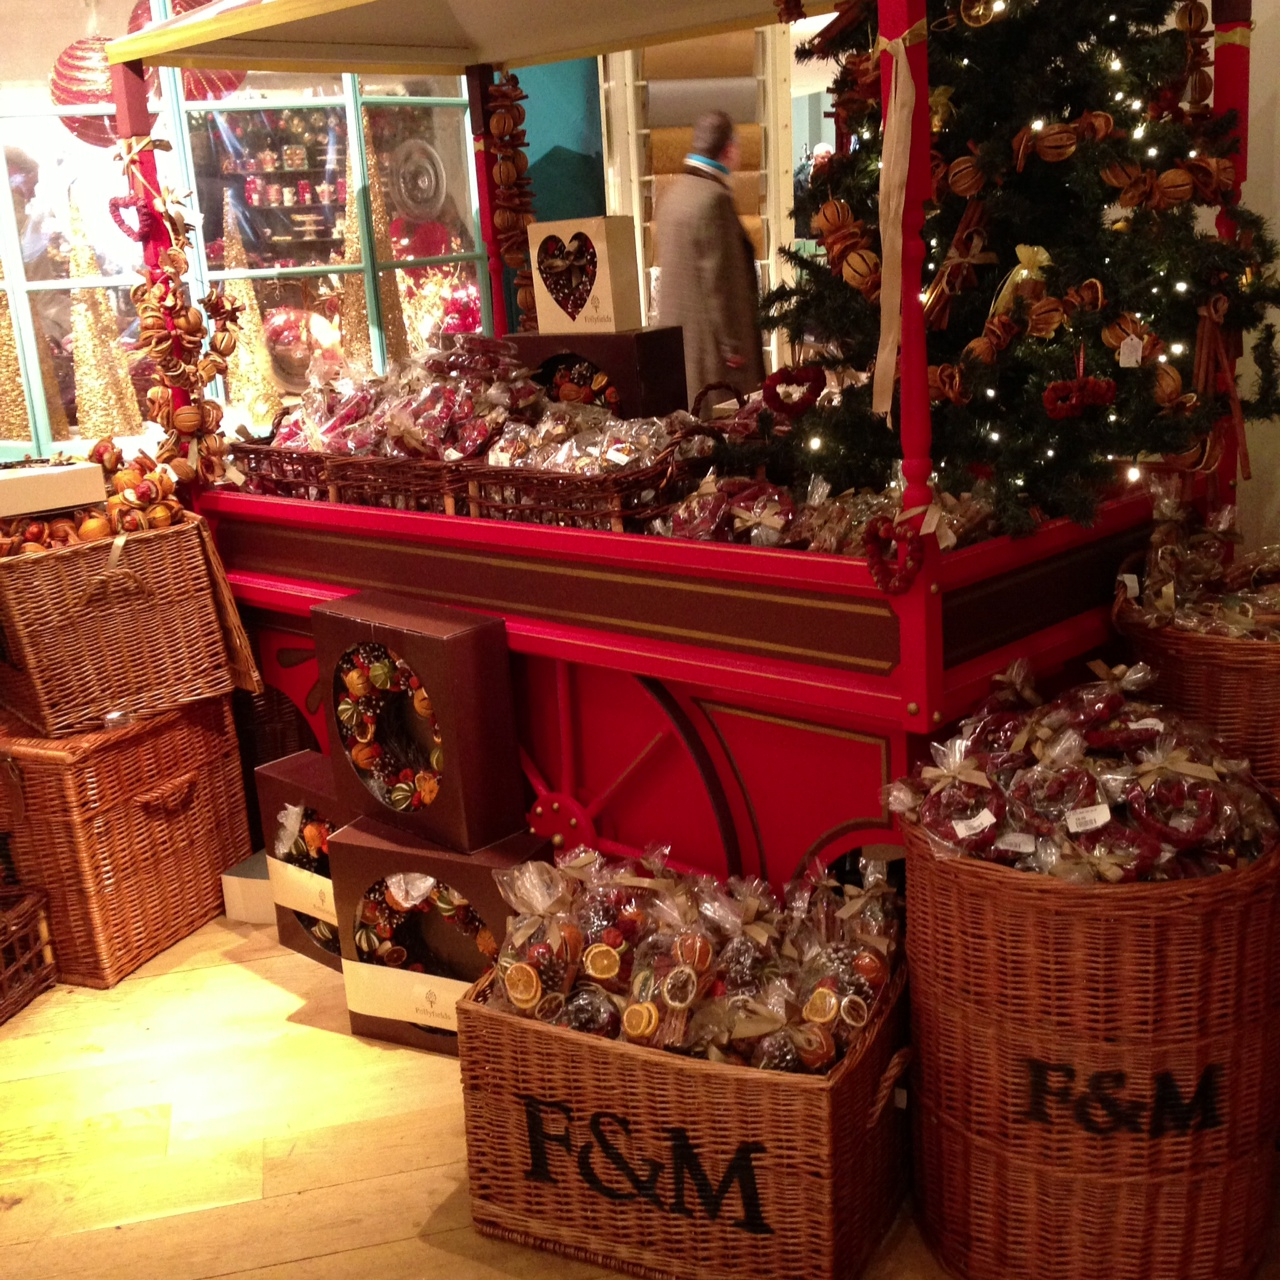 Christmas at fortnum mason angloyankophile - Fortnum and mason christmas decorations ...